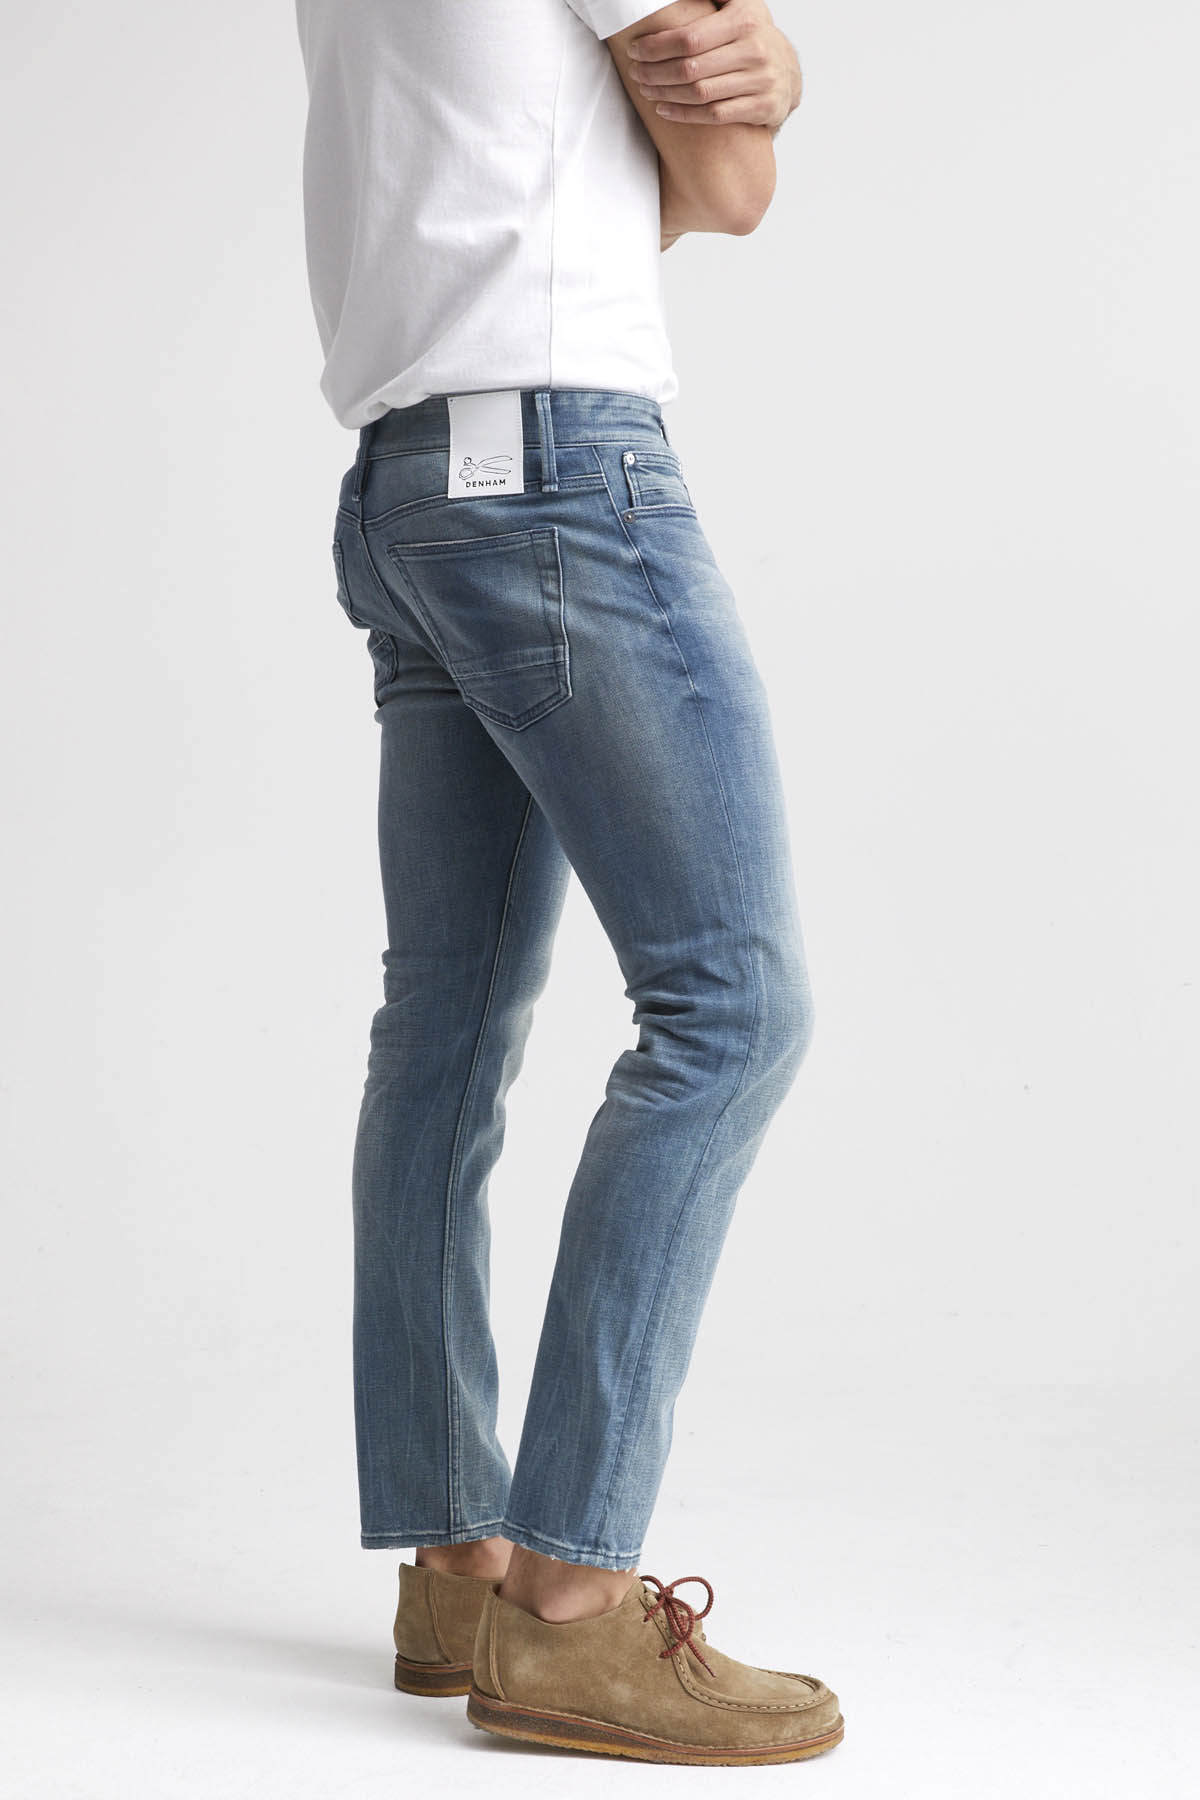 Hammer - Athletic Jeans - Back